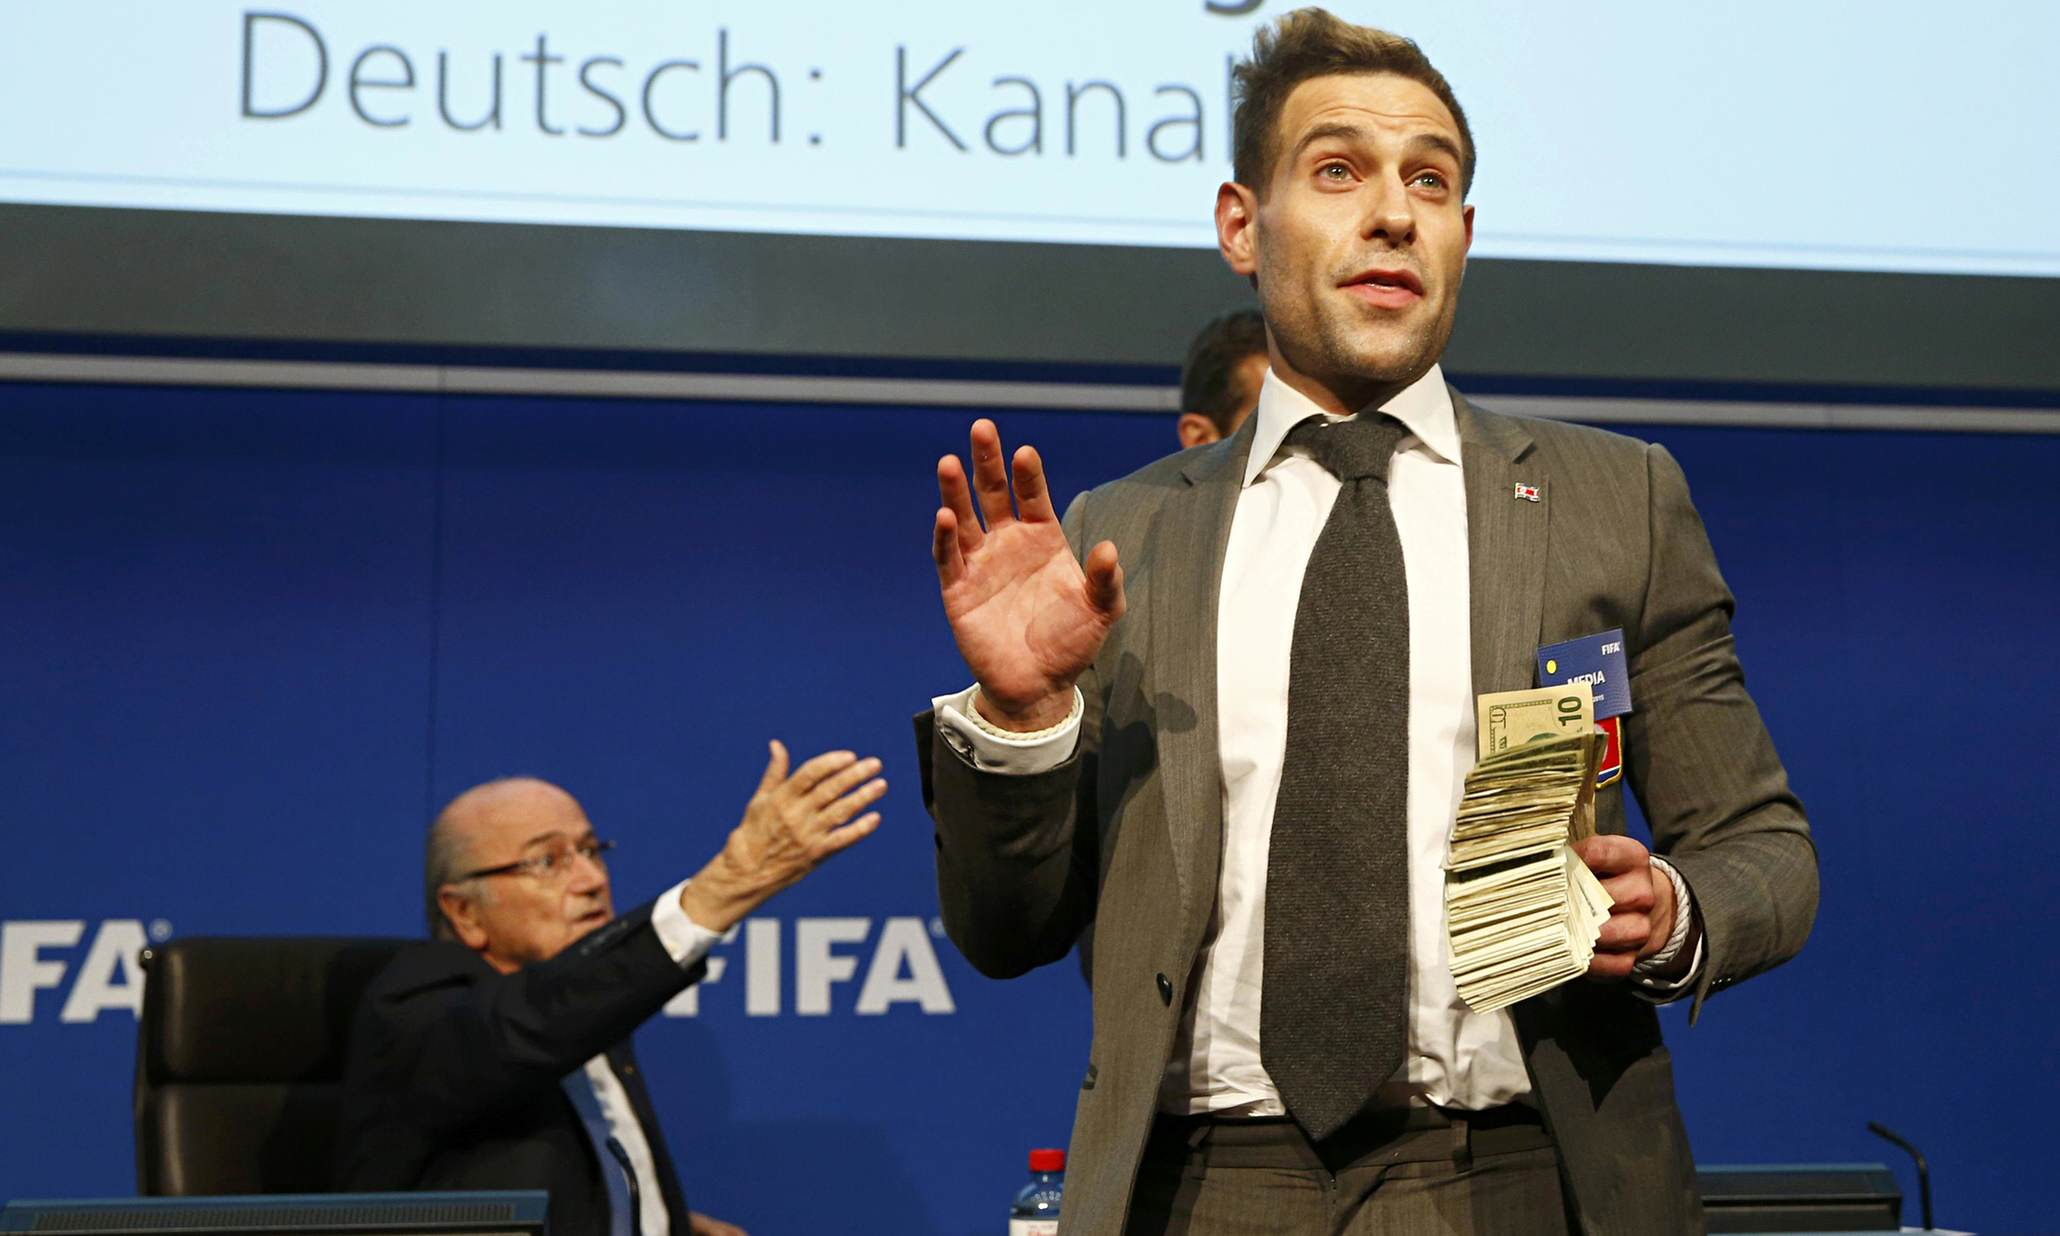 Lee Nelson Crashes Stage, Pulls Hilarious Stunt In VW Dieselgate Protest brodkin55